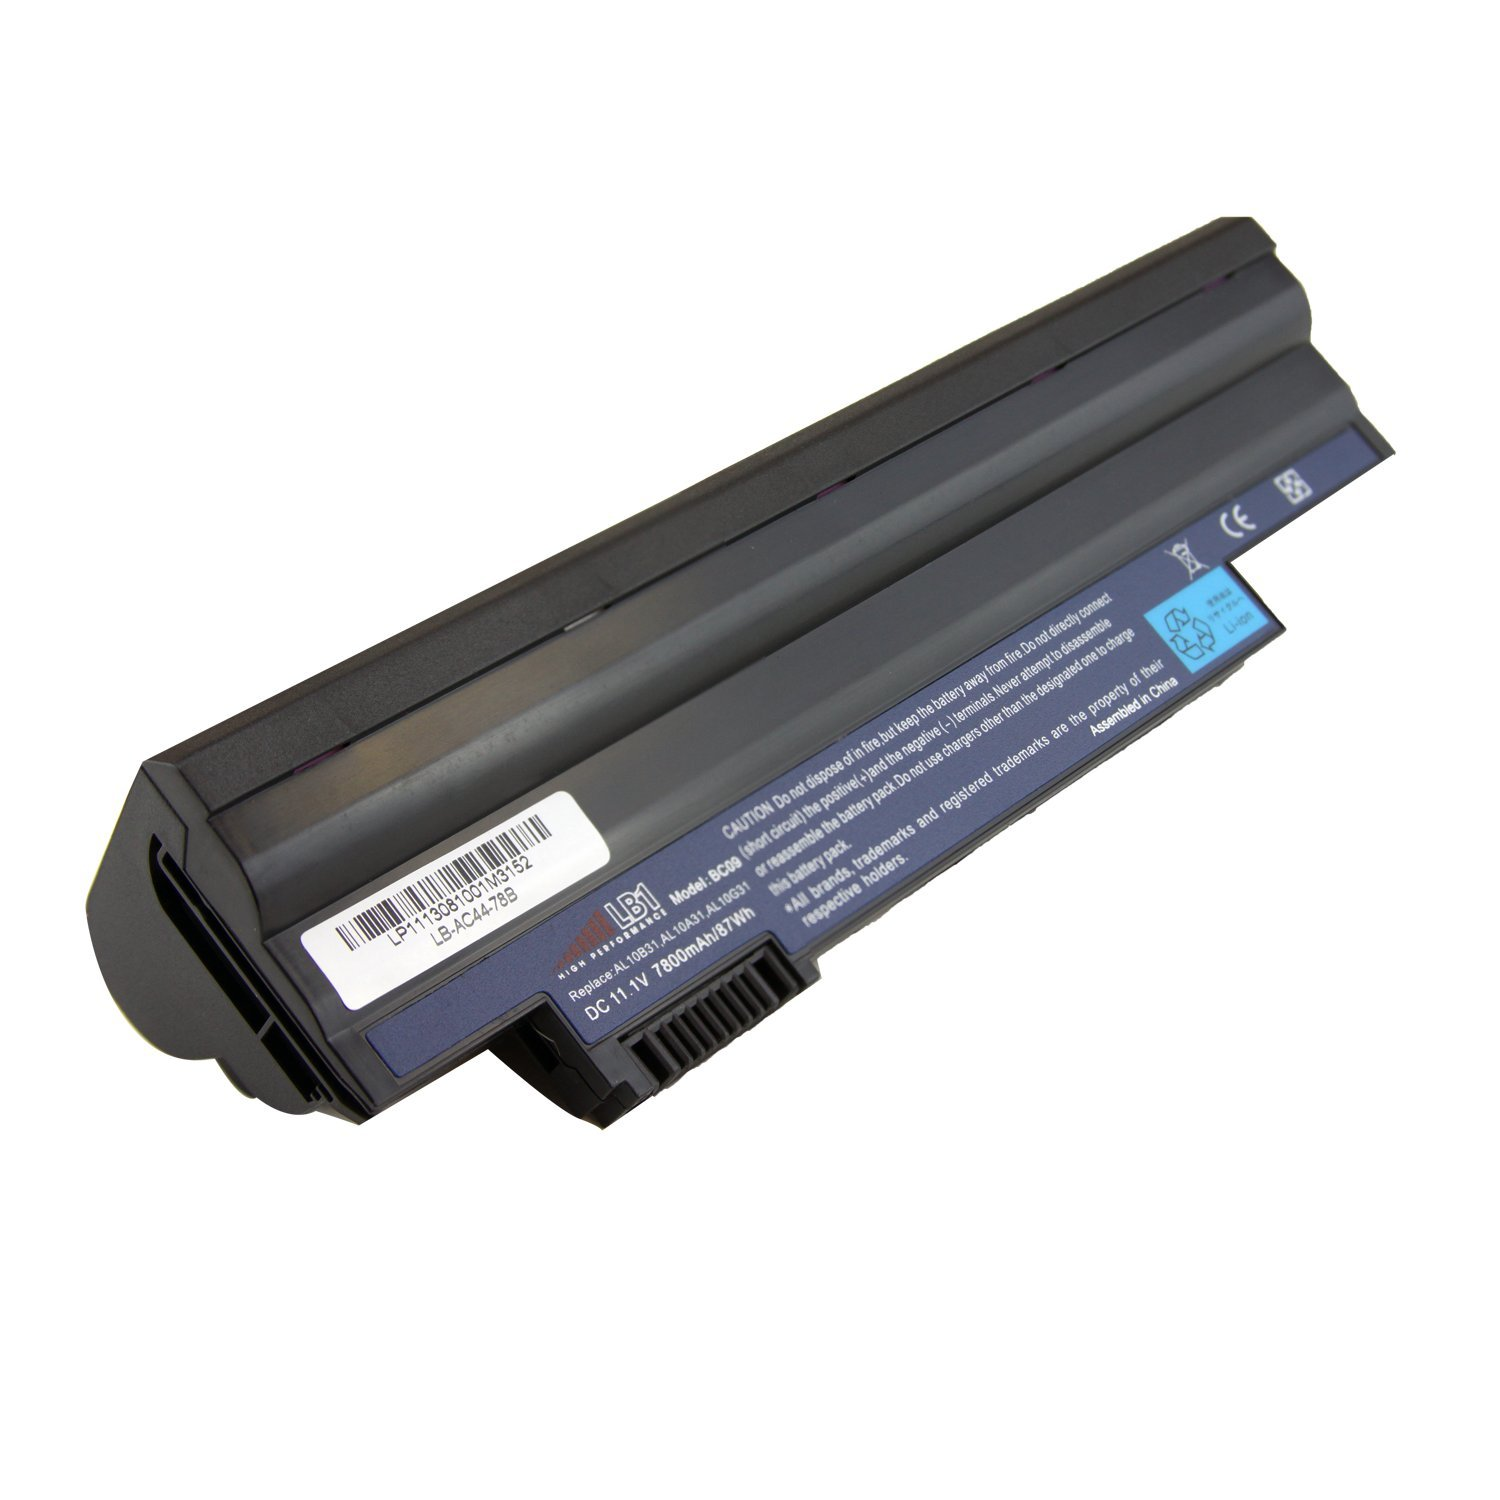 LB1 High Performance Battery for Acer Aspire One D255, DE255E, D260, 522, 722, Compatible Part#: AL10A31, AL10B31, AL10G31, AK.003BT.071, AK.006BT.074, ICR17/65L, C.BTP00.12L, C.BTP00.128 Laptop Notebook Computer [9-Cell 11.1V] 18 Months Warranty